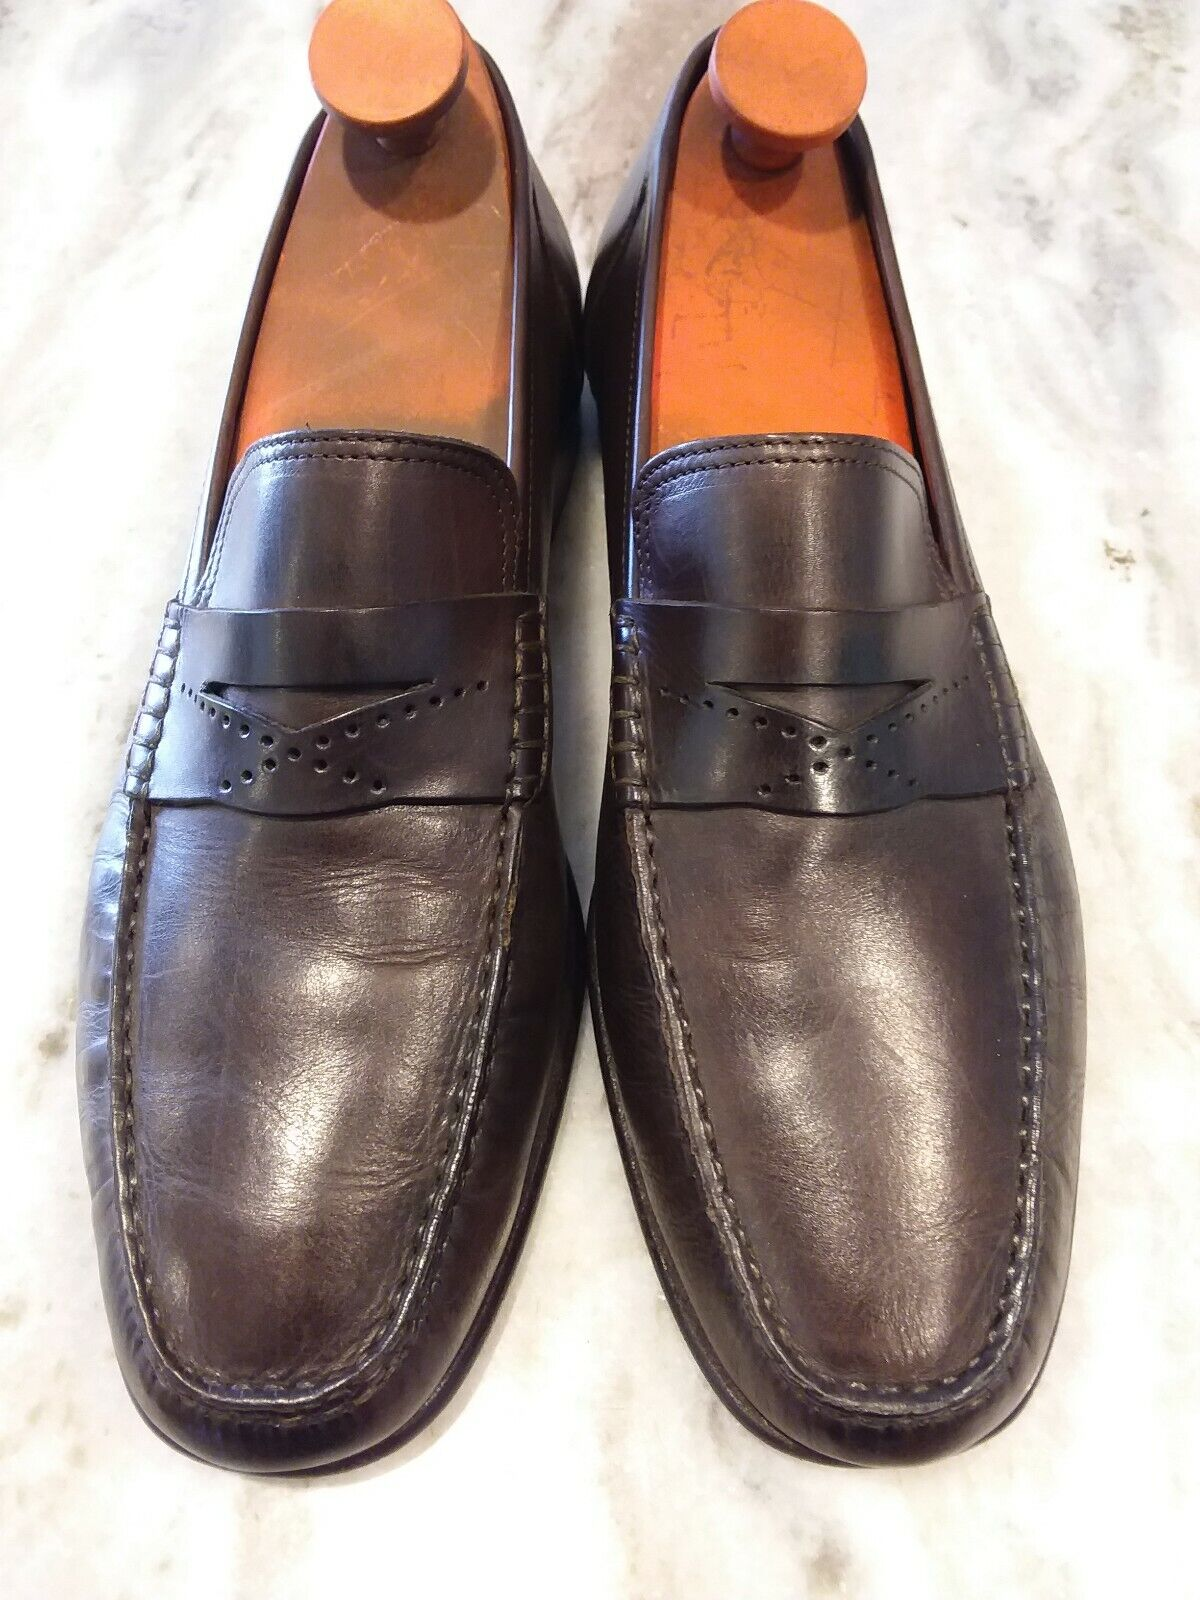 Mens Beautiful SANTONI Top Stitched Deep Chocolate Marronee Loafers. Dimensione 10D